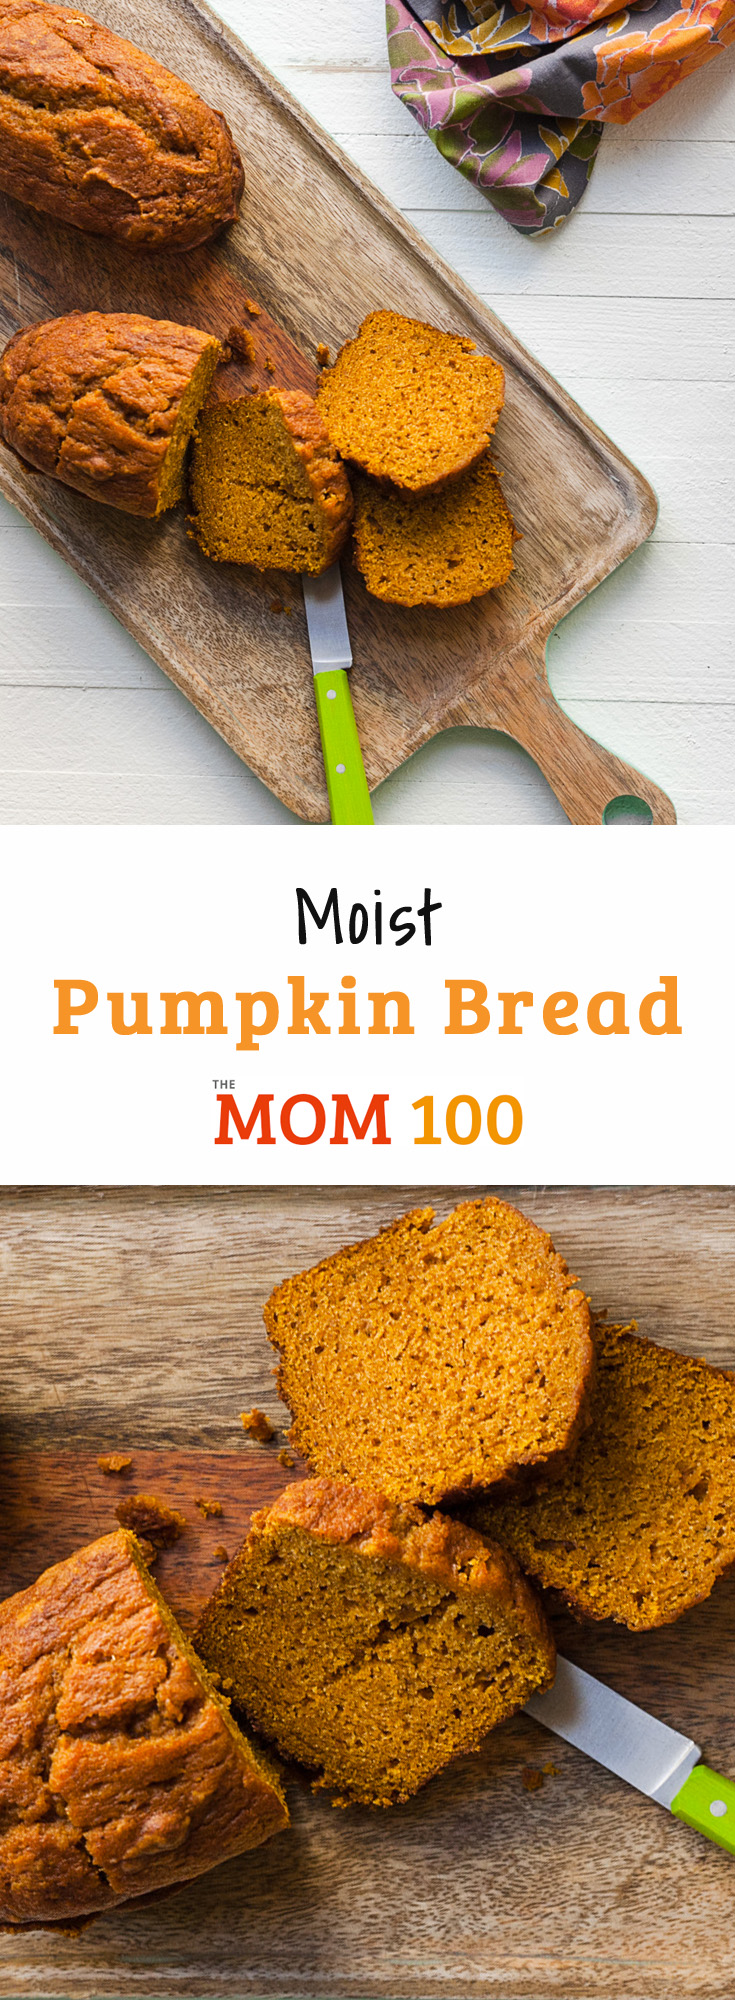 Moist Pumpkin Bread: This is the best pumpkin bread recipe, easy, flavorful, and moist. 10 minutes to get into the oven (and can make 4 mini loaves!).